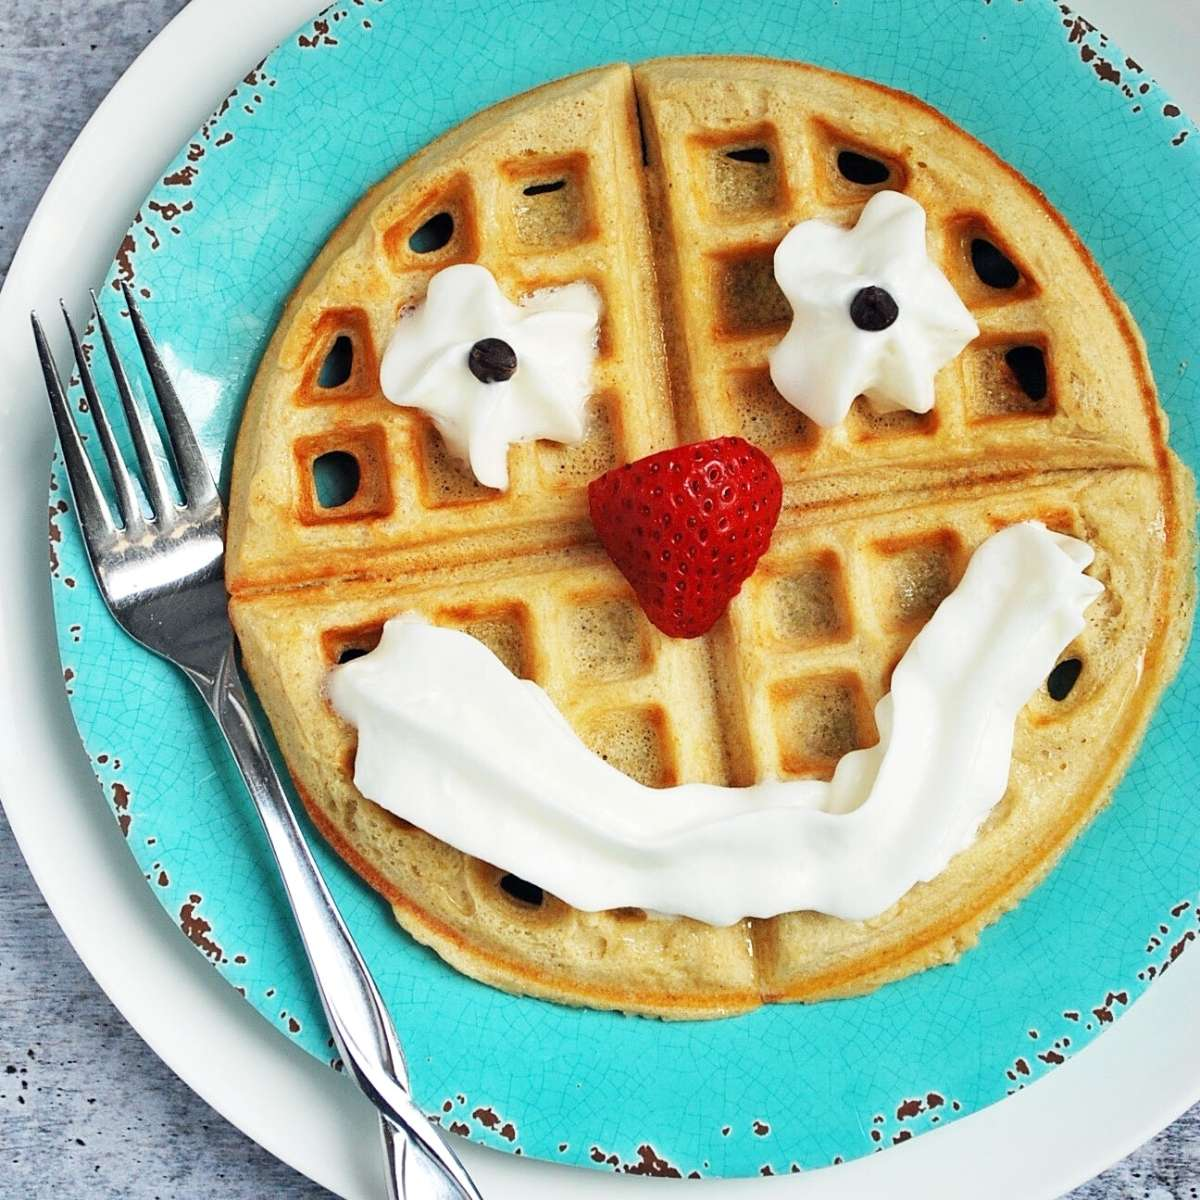 This simple tasty waffle recipe from scratch made with unbleached flour, eggs, milk and butter is a must try and your kids will love decorating them!